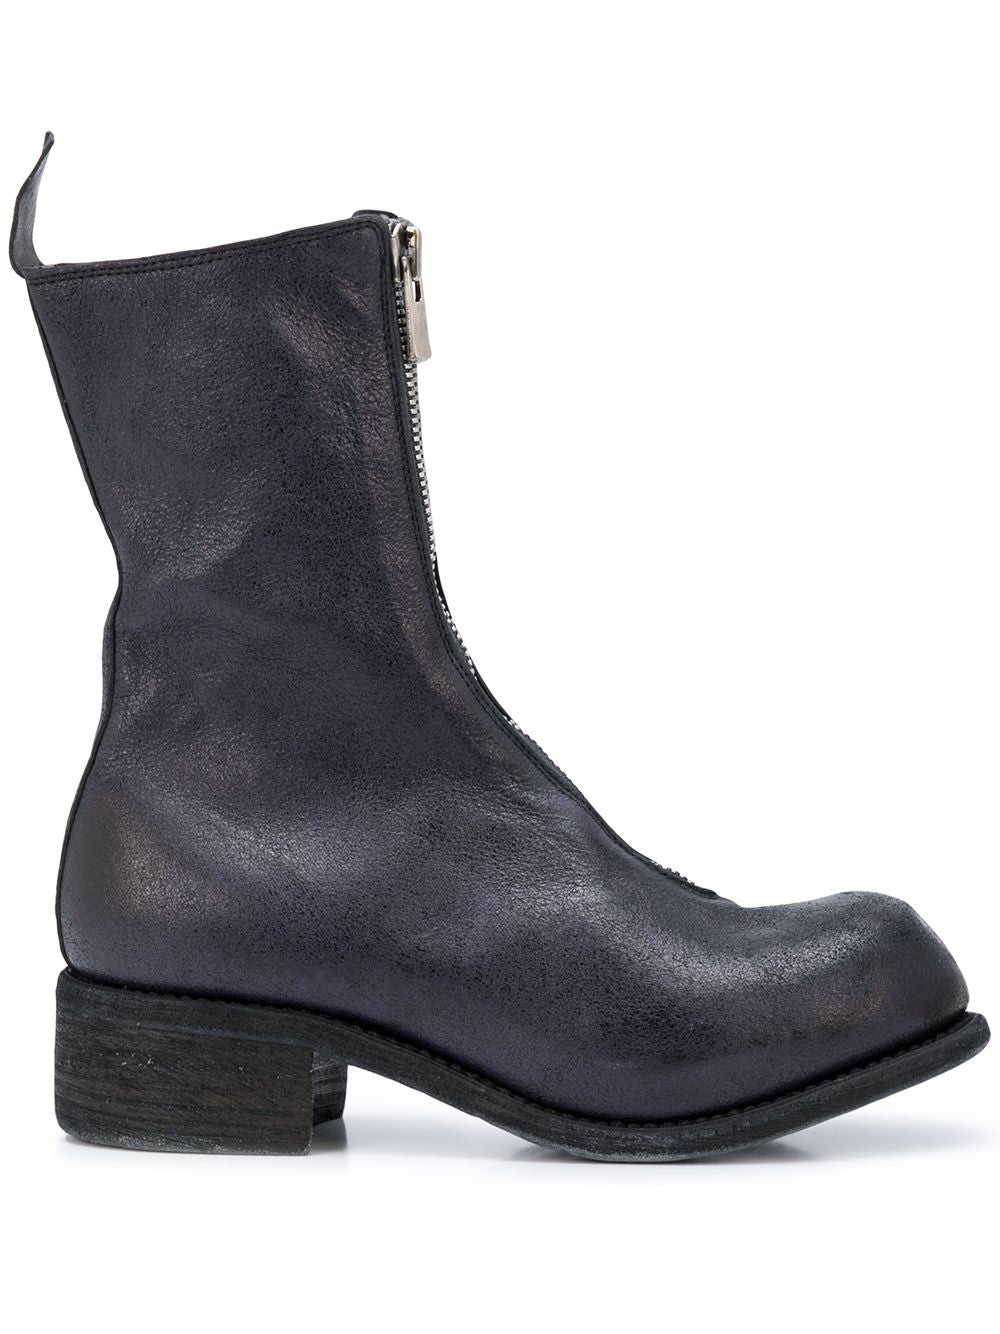 GUIDI WOMEN COATED PL2 FRONT ZIP BOOTS